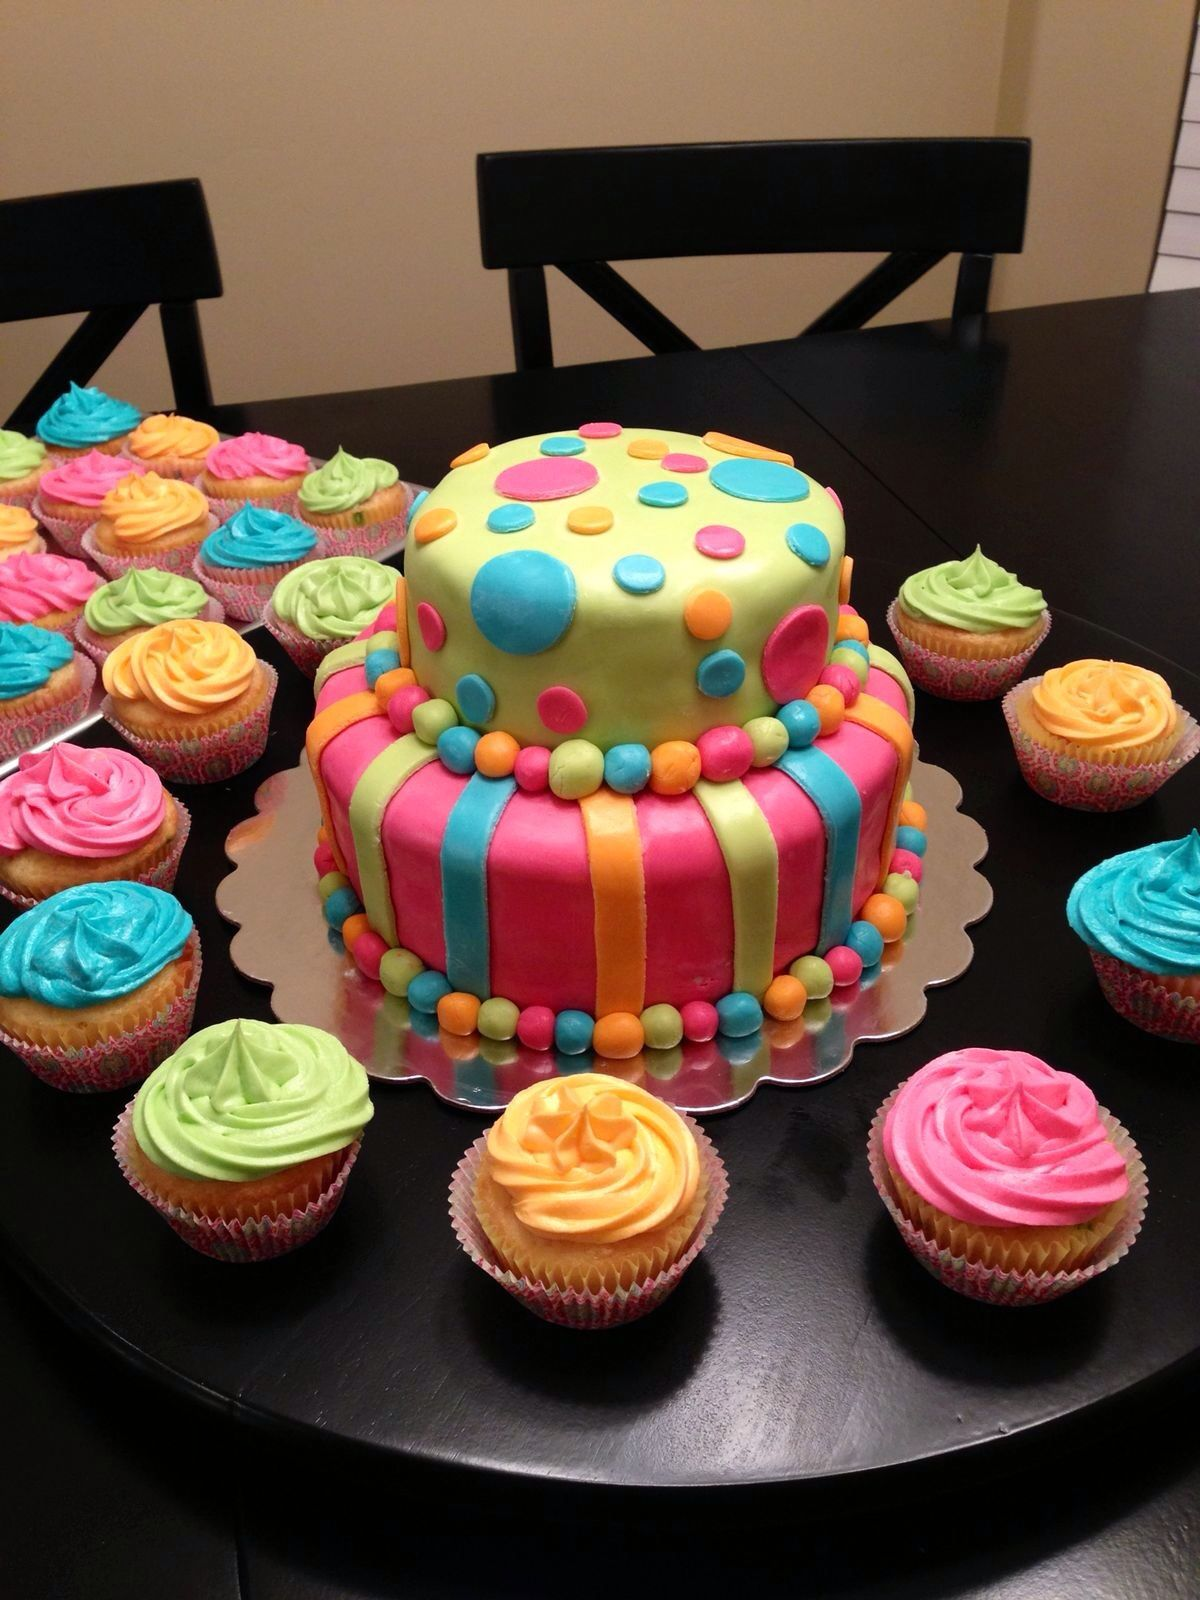 Yummy cake with matching cupcakes